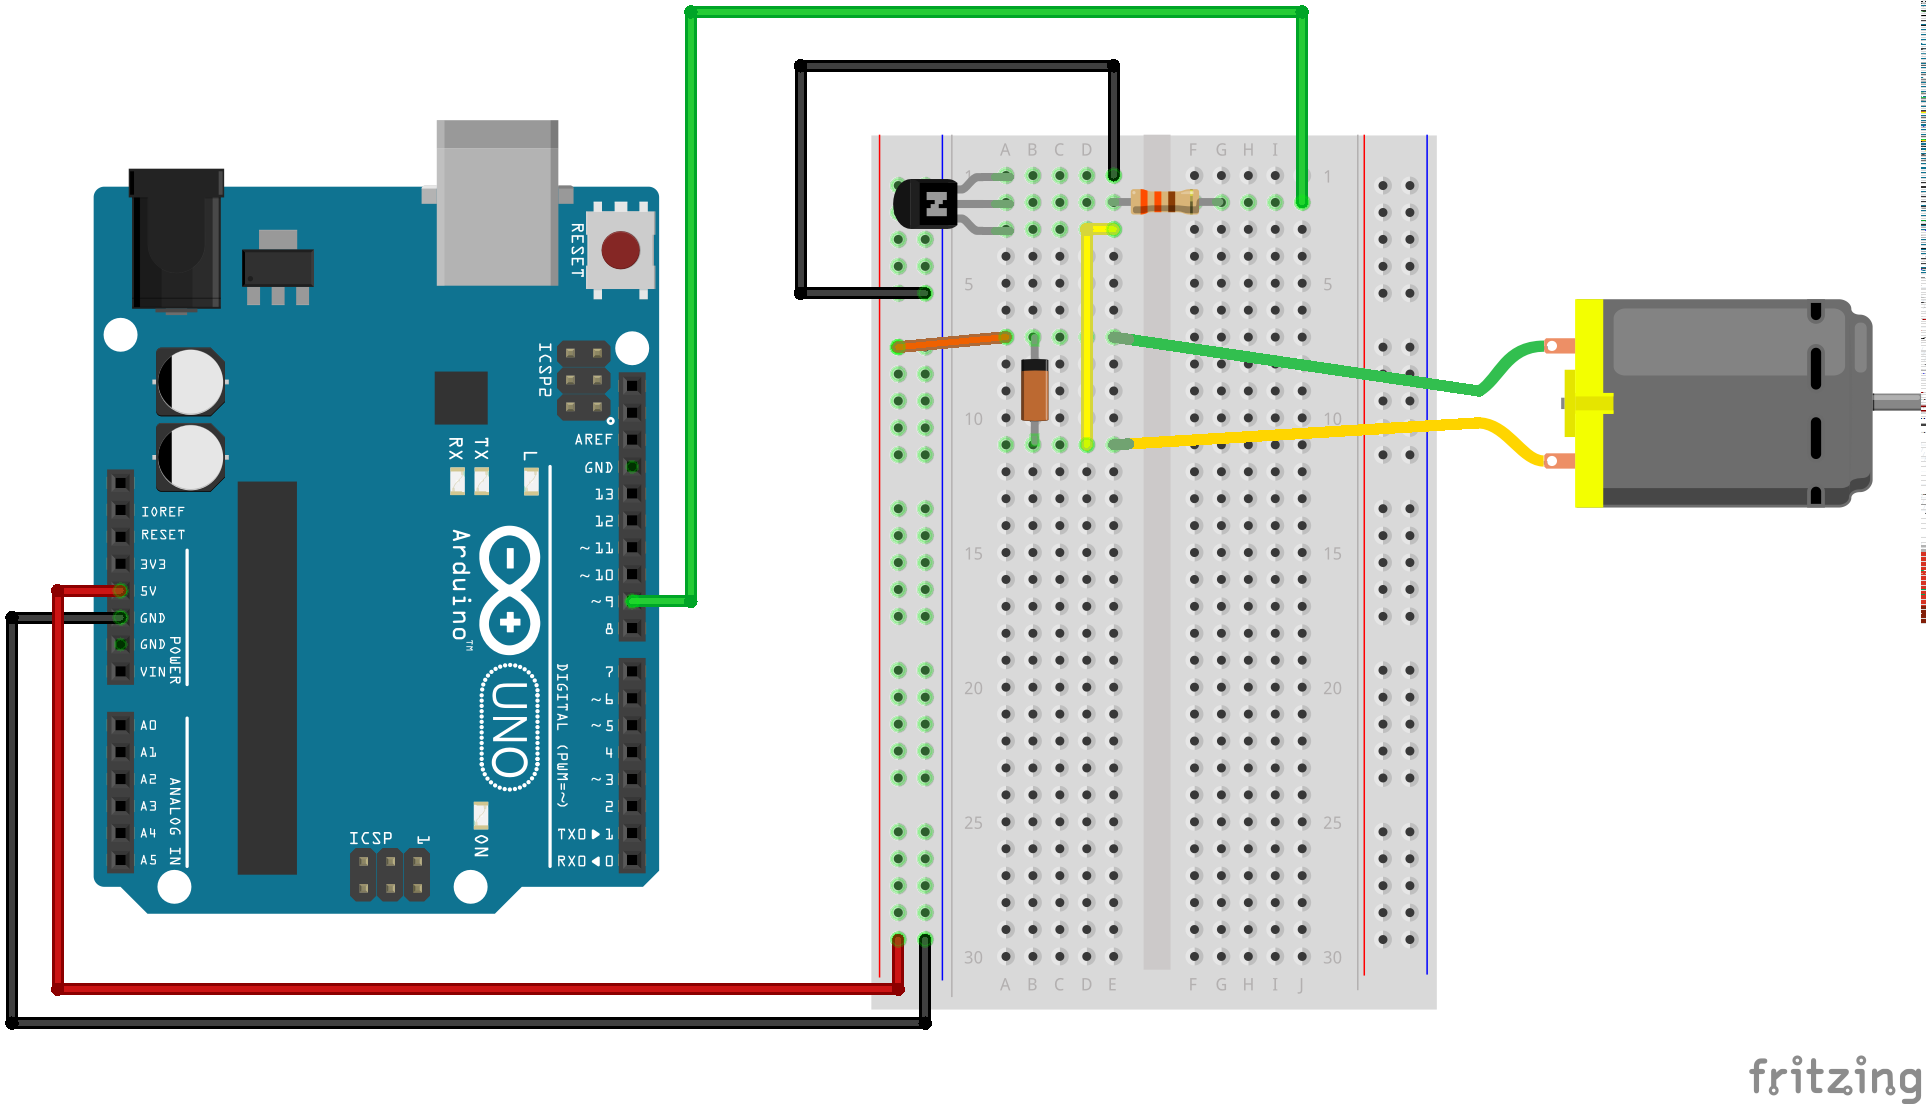 Sik experiment guide for arduino v3 2 for Schematic diagram of dc motor